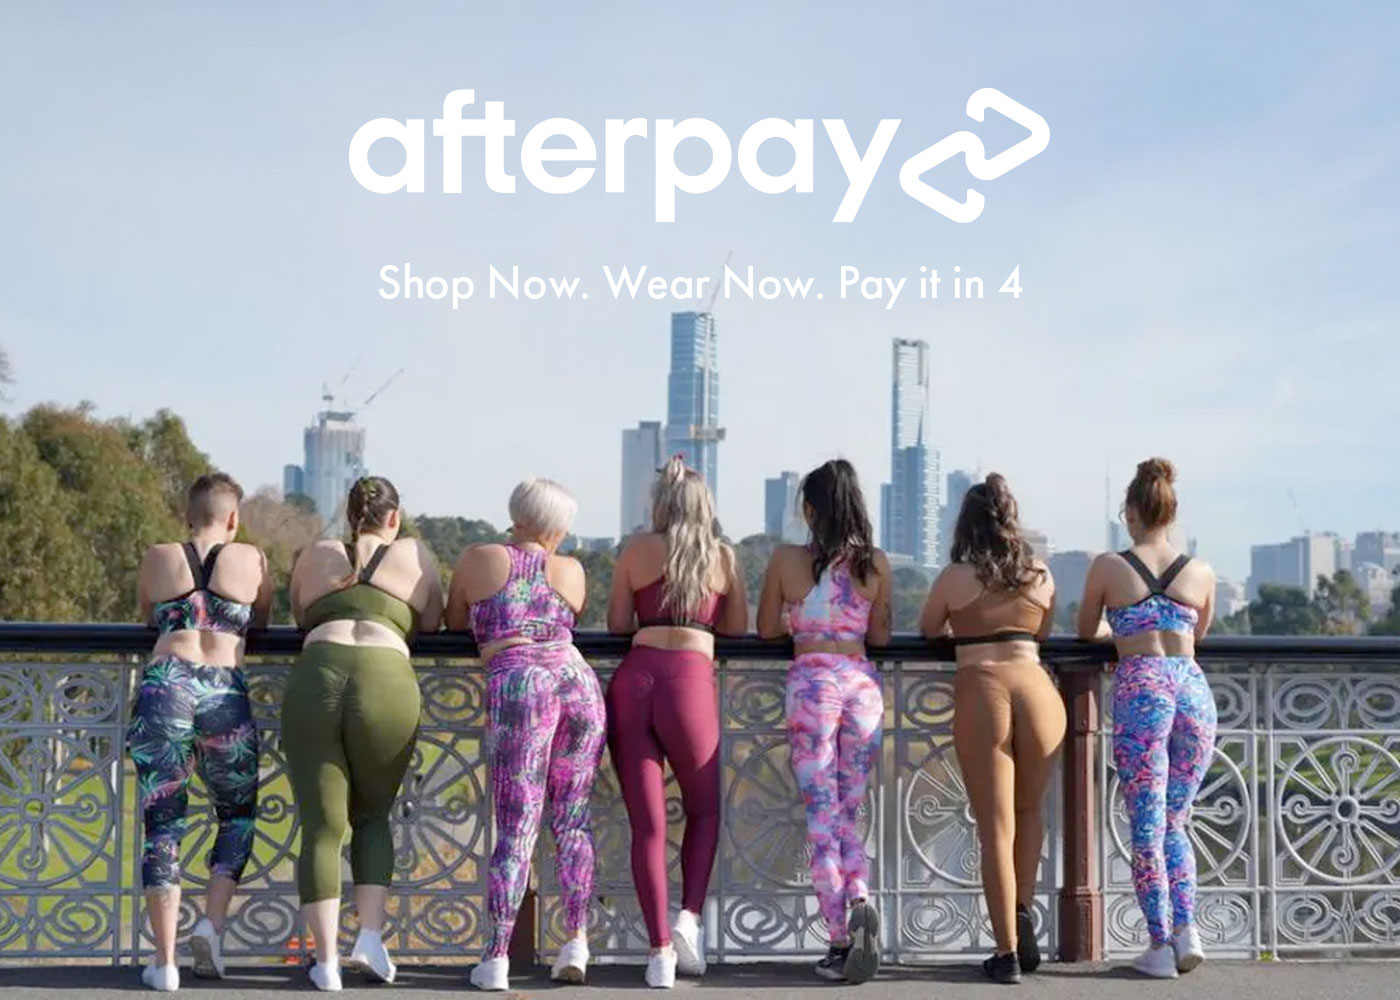 Rarr Deigns - Online Polewear Autralia - Buy Now, Pay Later with Afterpay